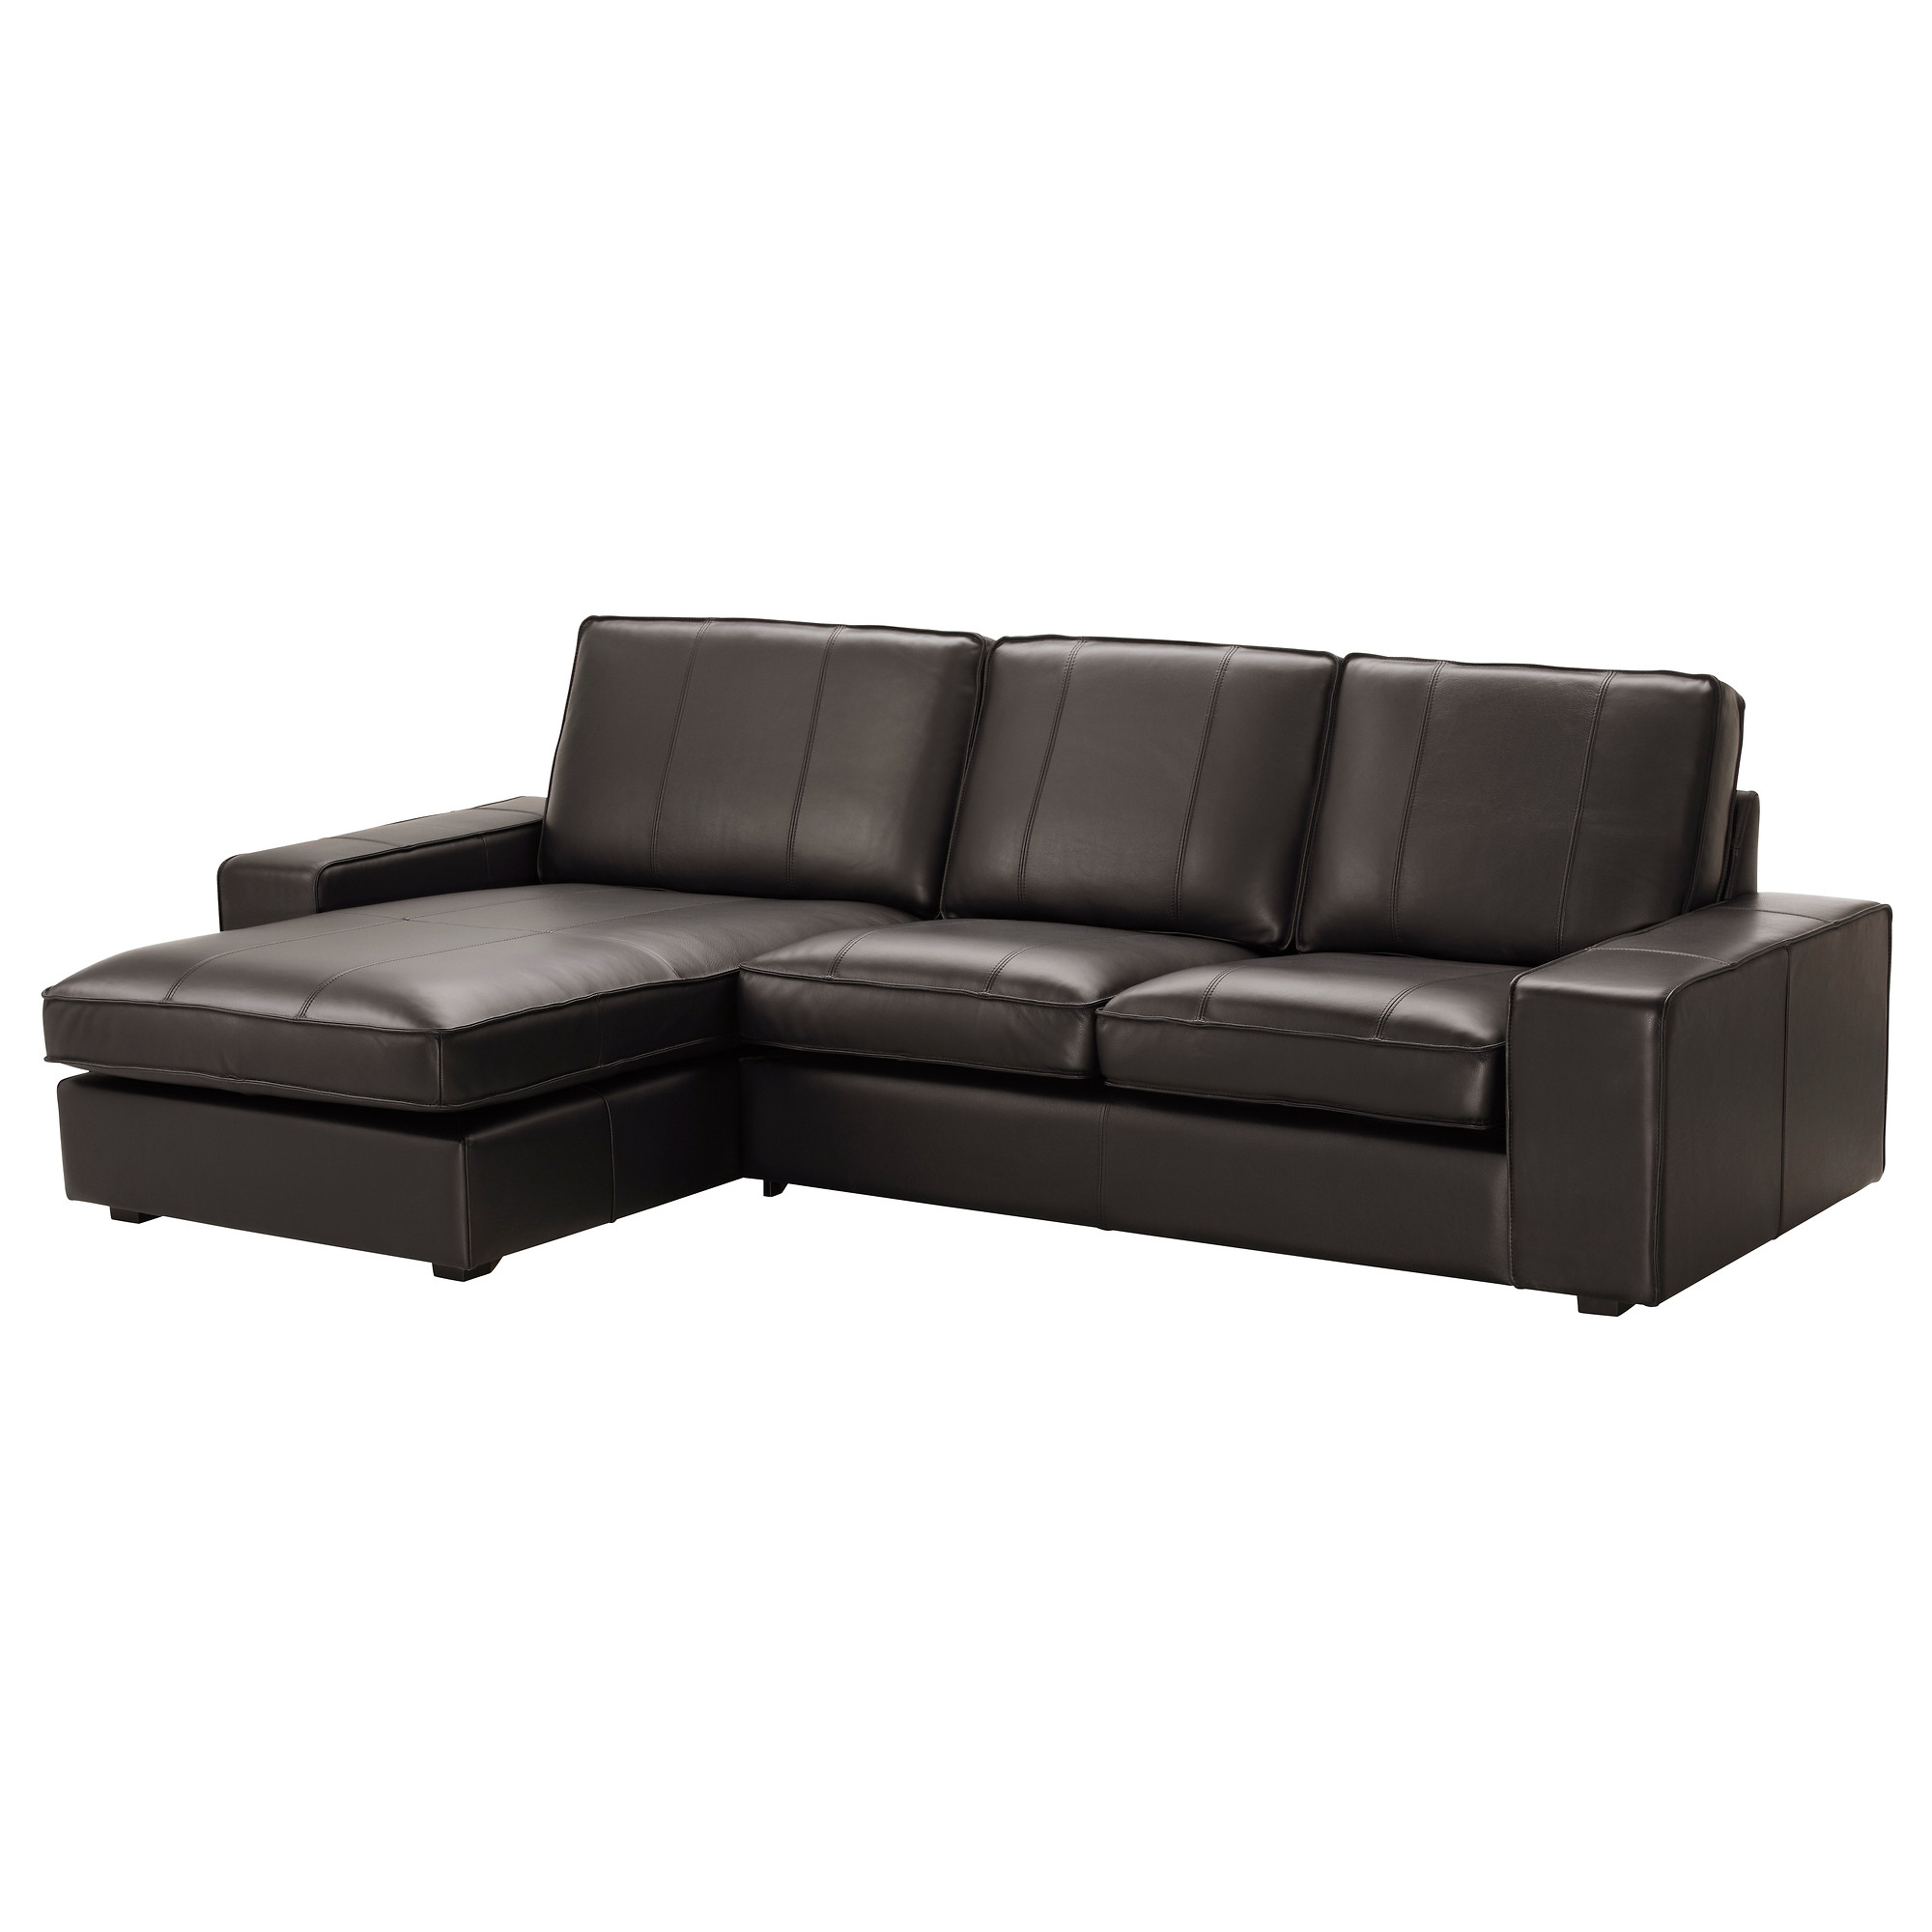 Sofa ikea leder  KIVIK Sofa - with chaise/Grann/Bomstad black - IKEA